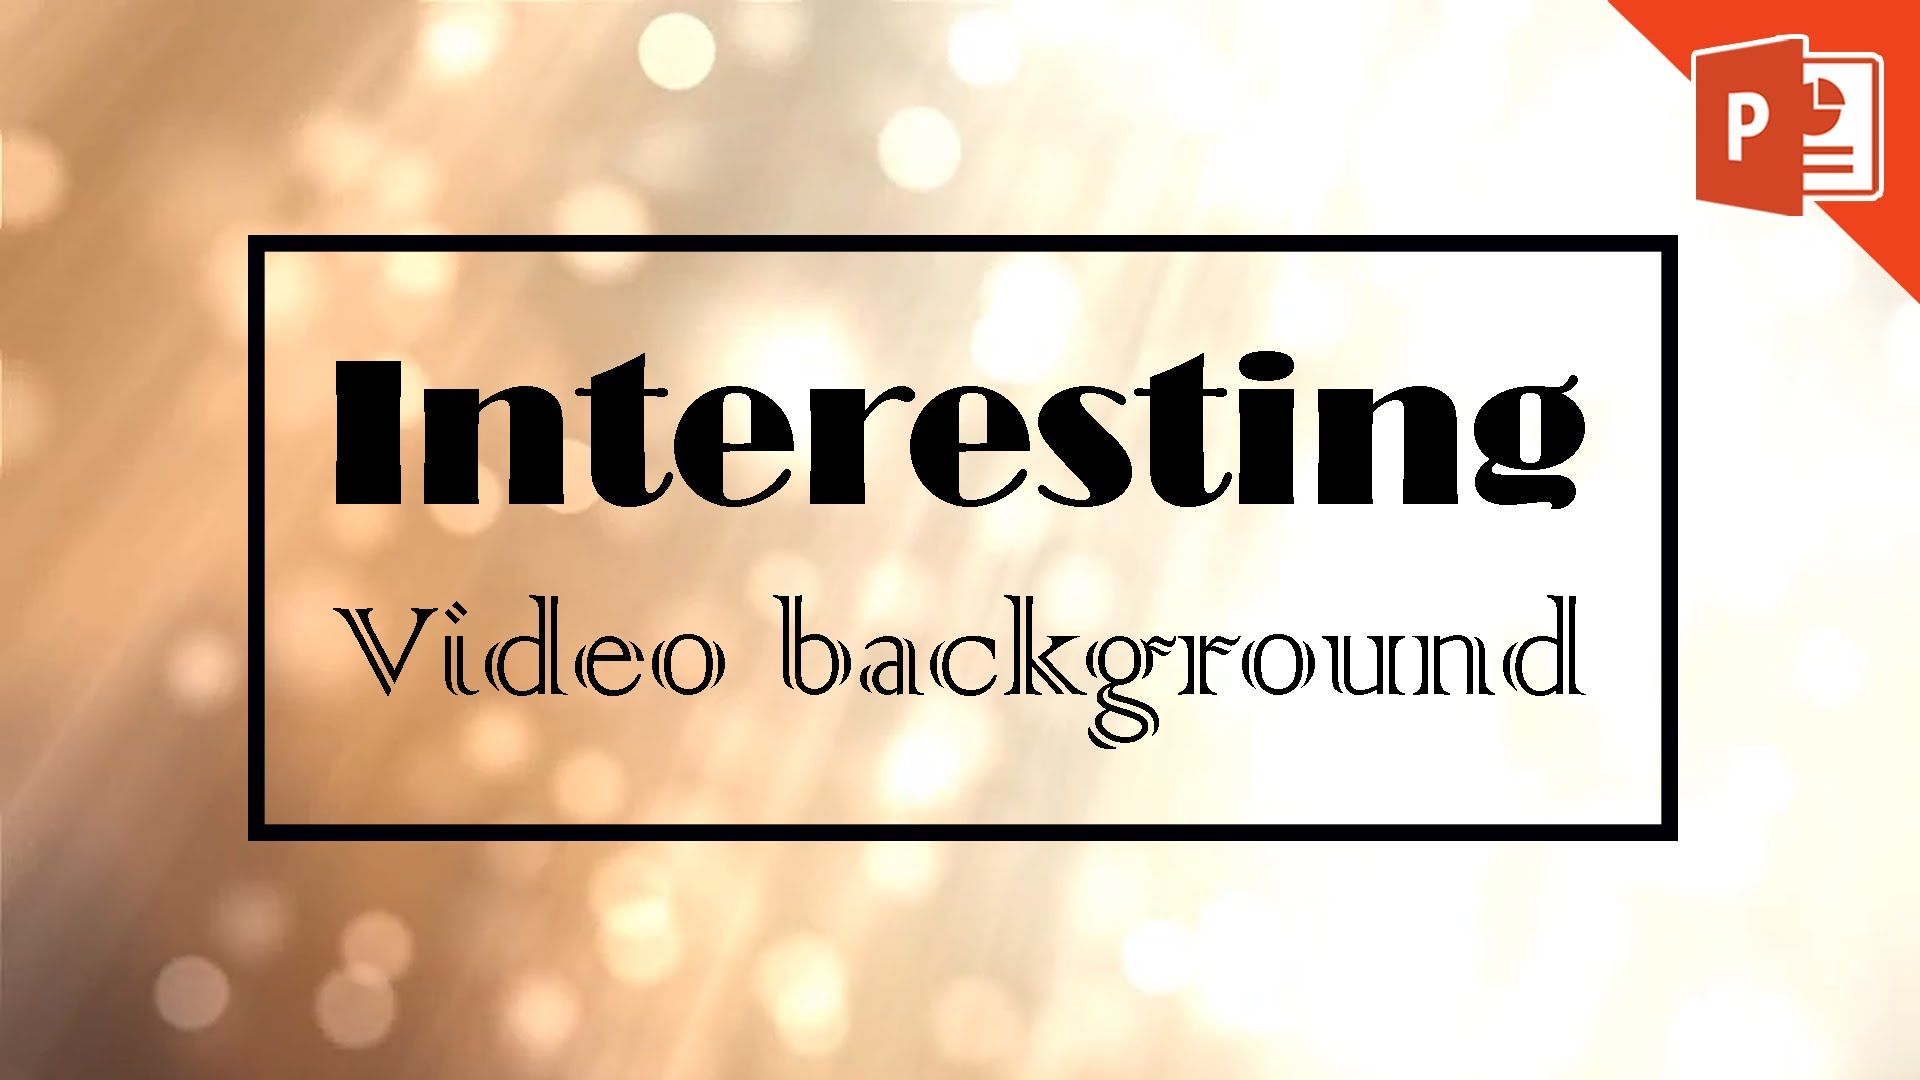 Add a Playing Video Background in PowerPoint 2013 2016 365